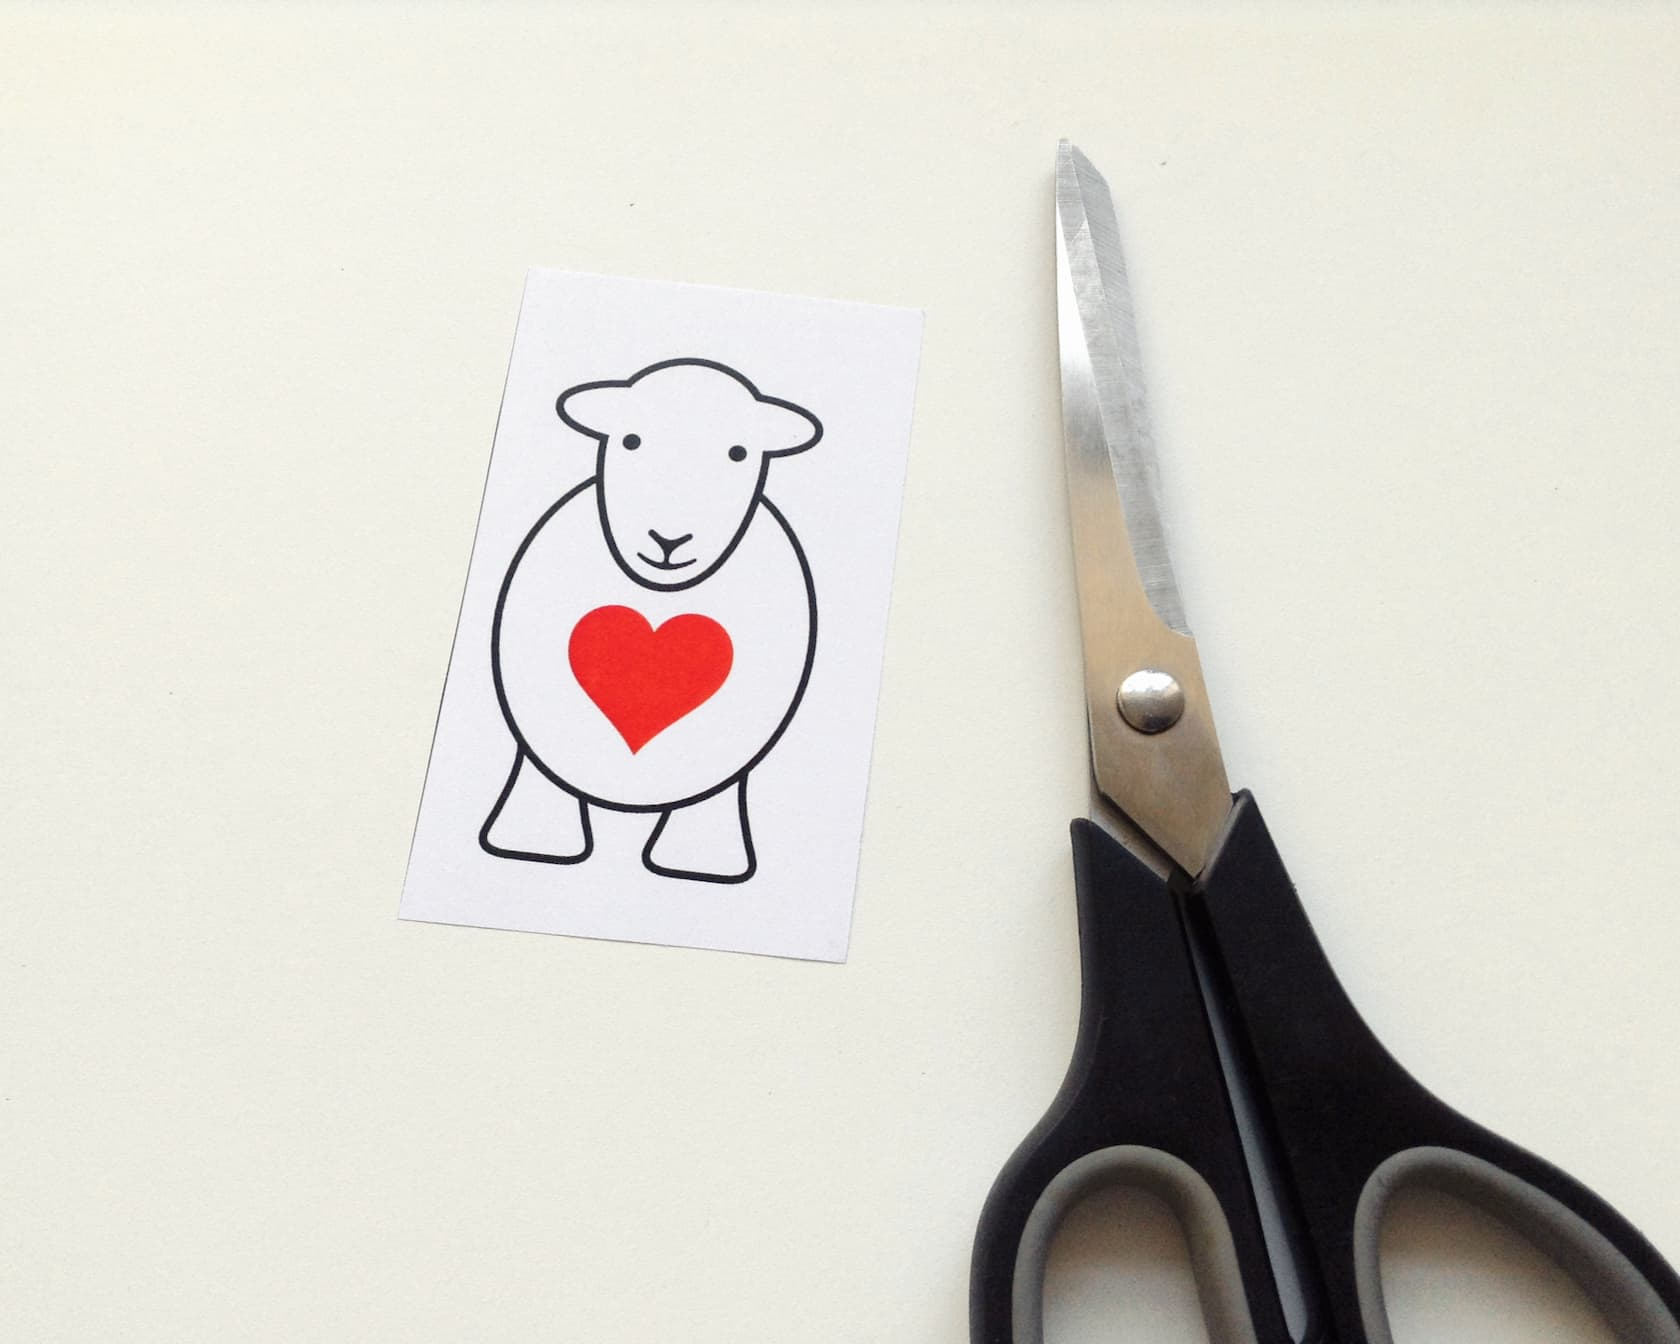 Cut around the Herdy Love Ewe Yan template